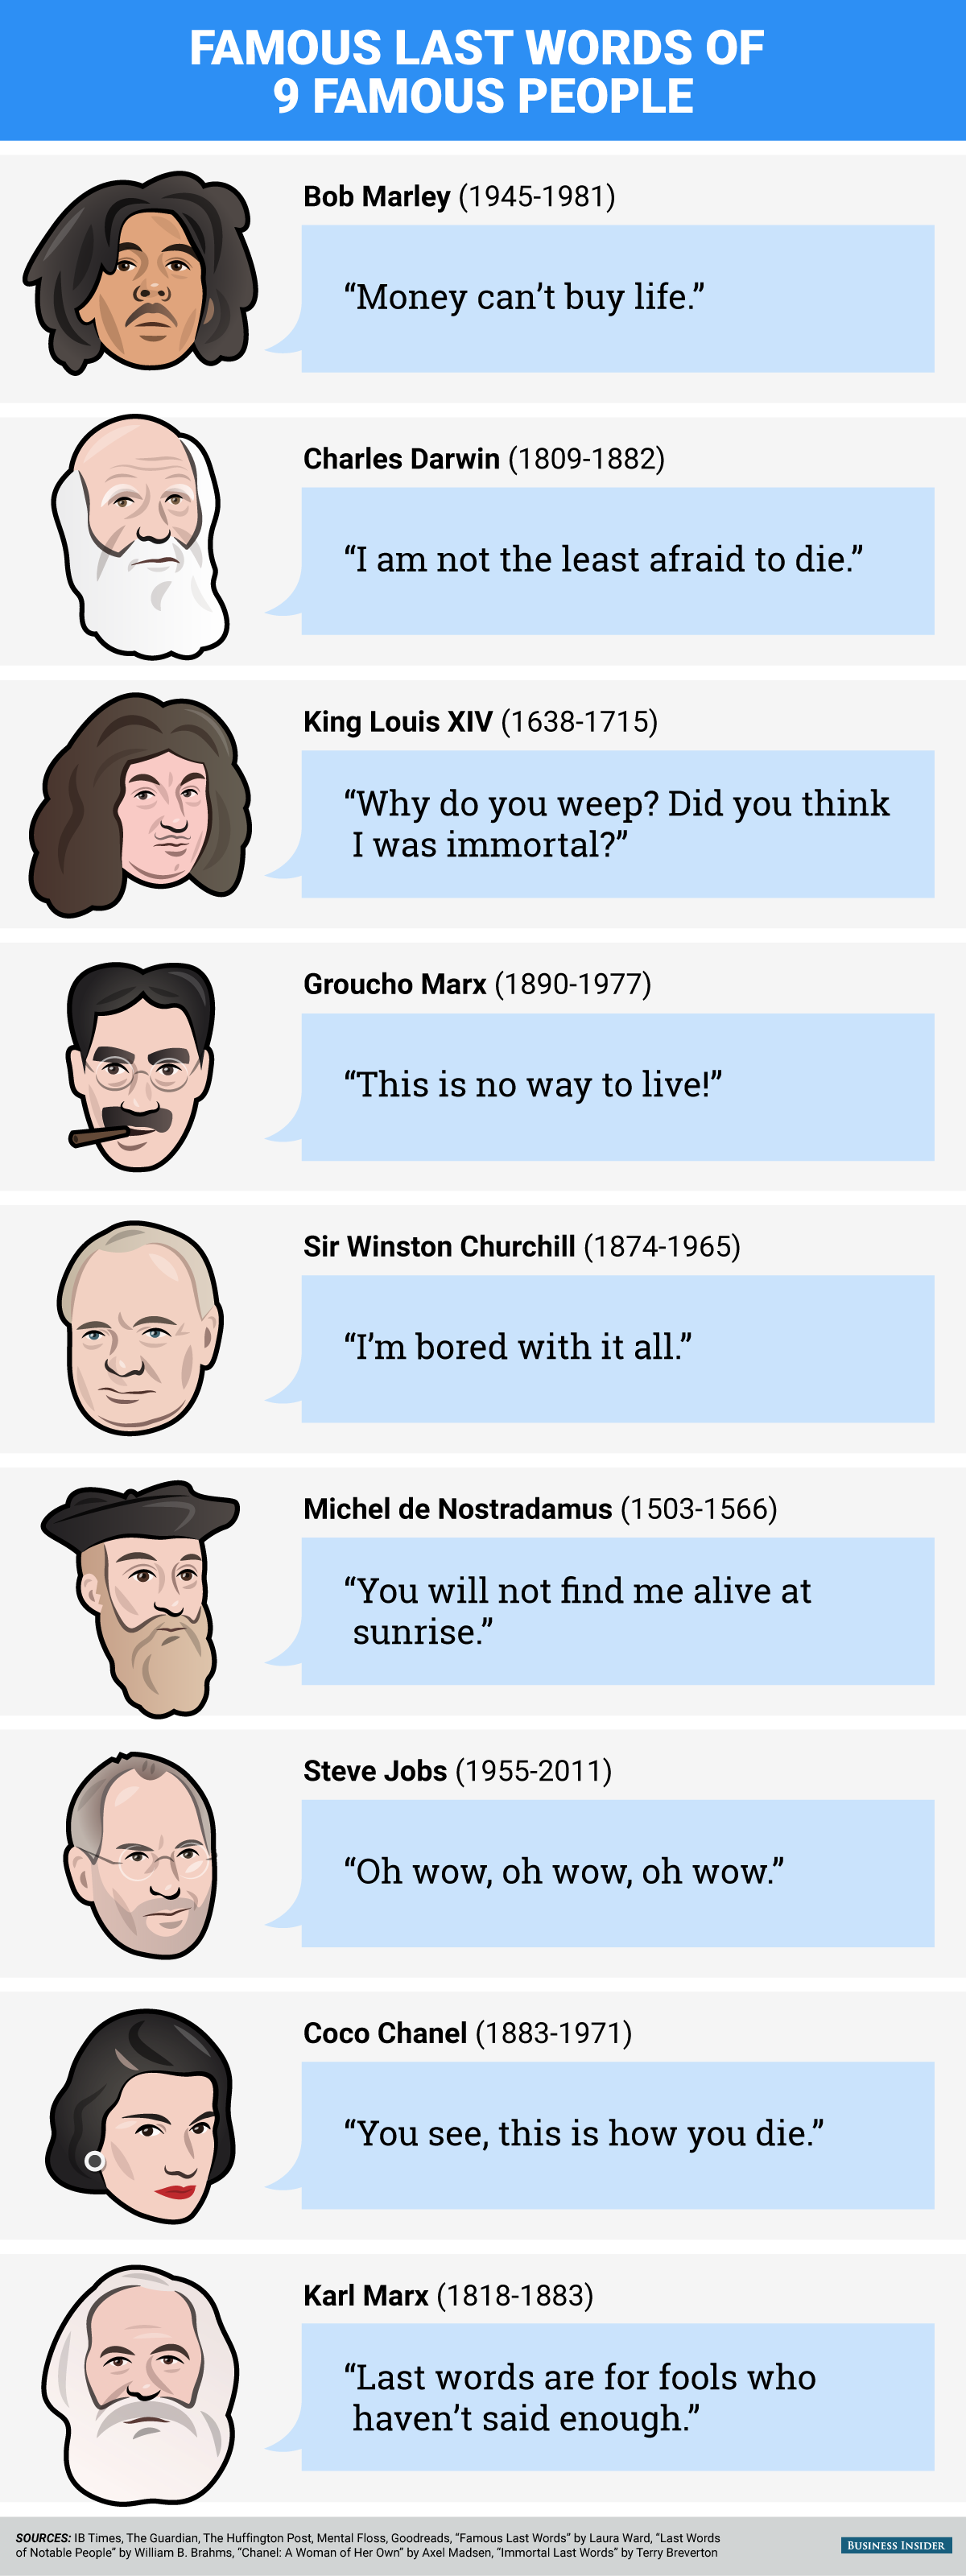 Strange Things 9 Famous People Said Right Before They Died Famous Book Quotes Famous People Celebrities Quotes By Famous People